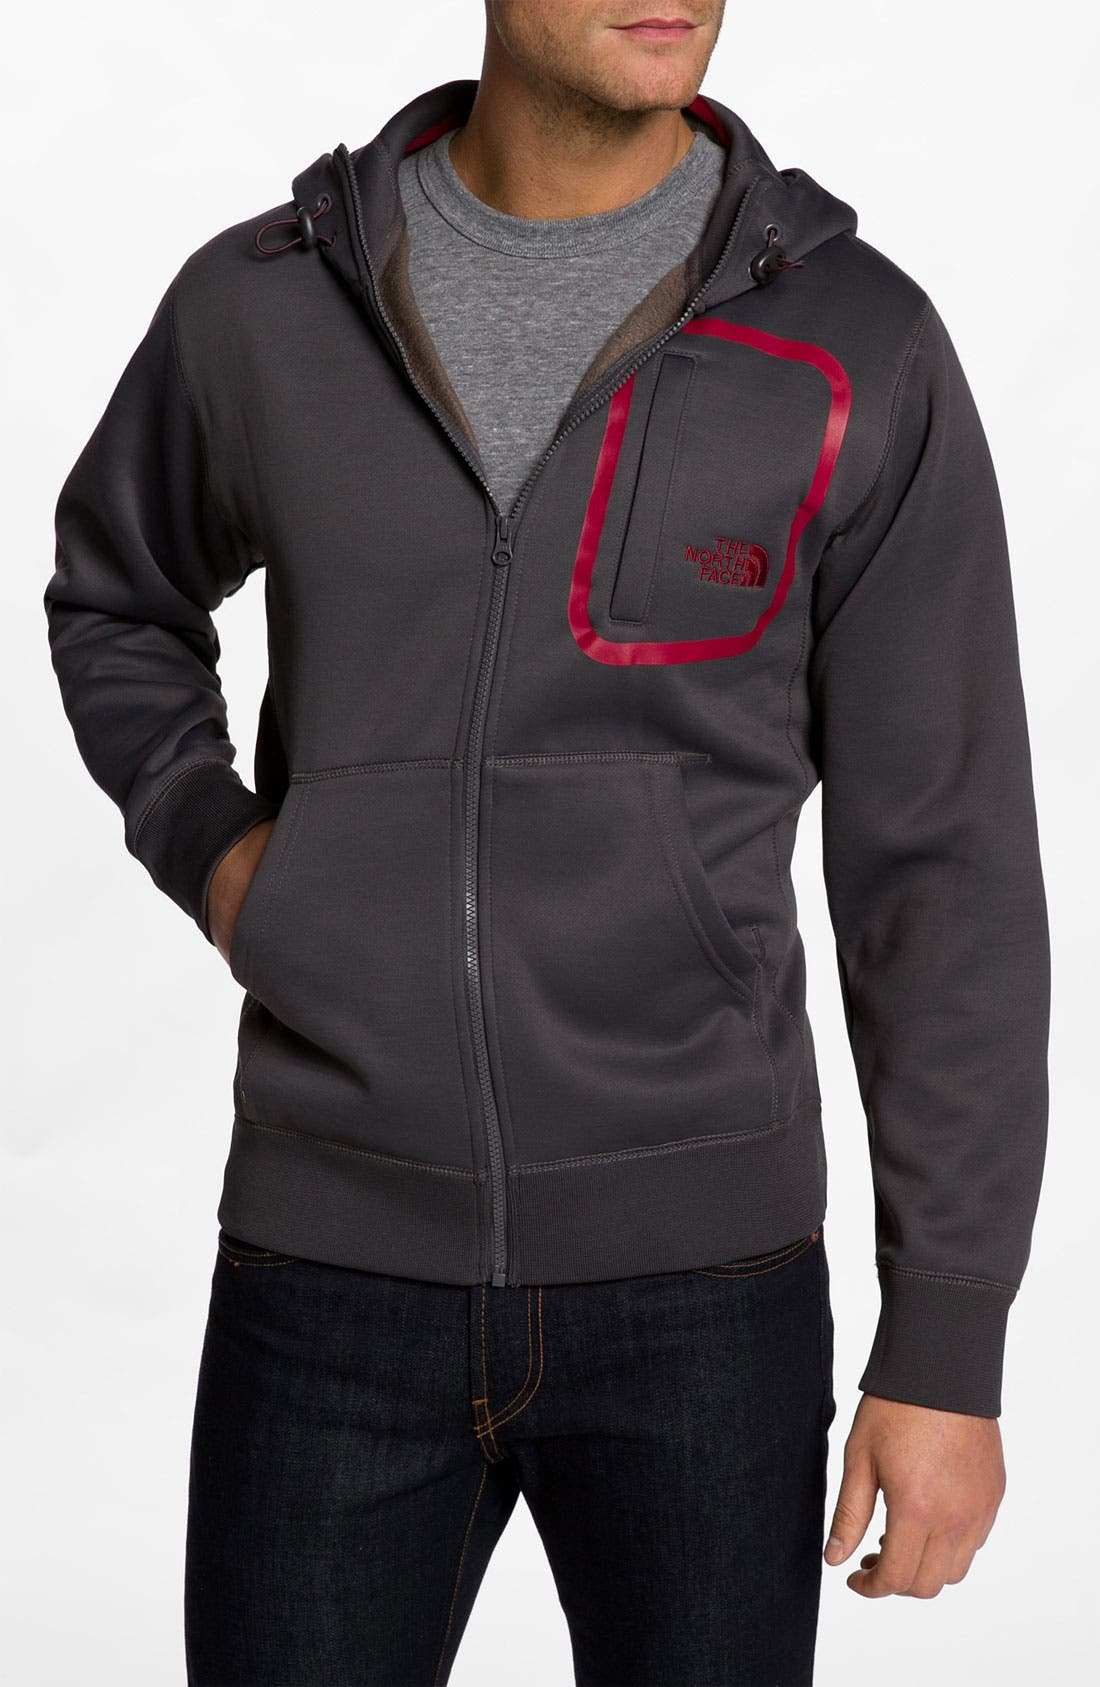 Alternate Image 1 Selected - The North Face '88 Blocks' Zip Hoodie